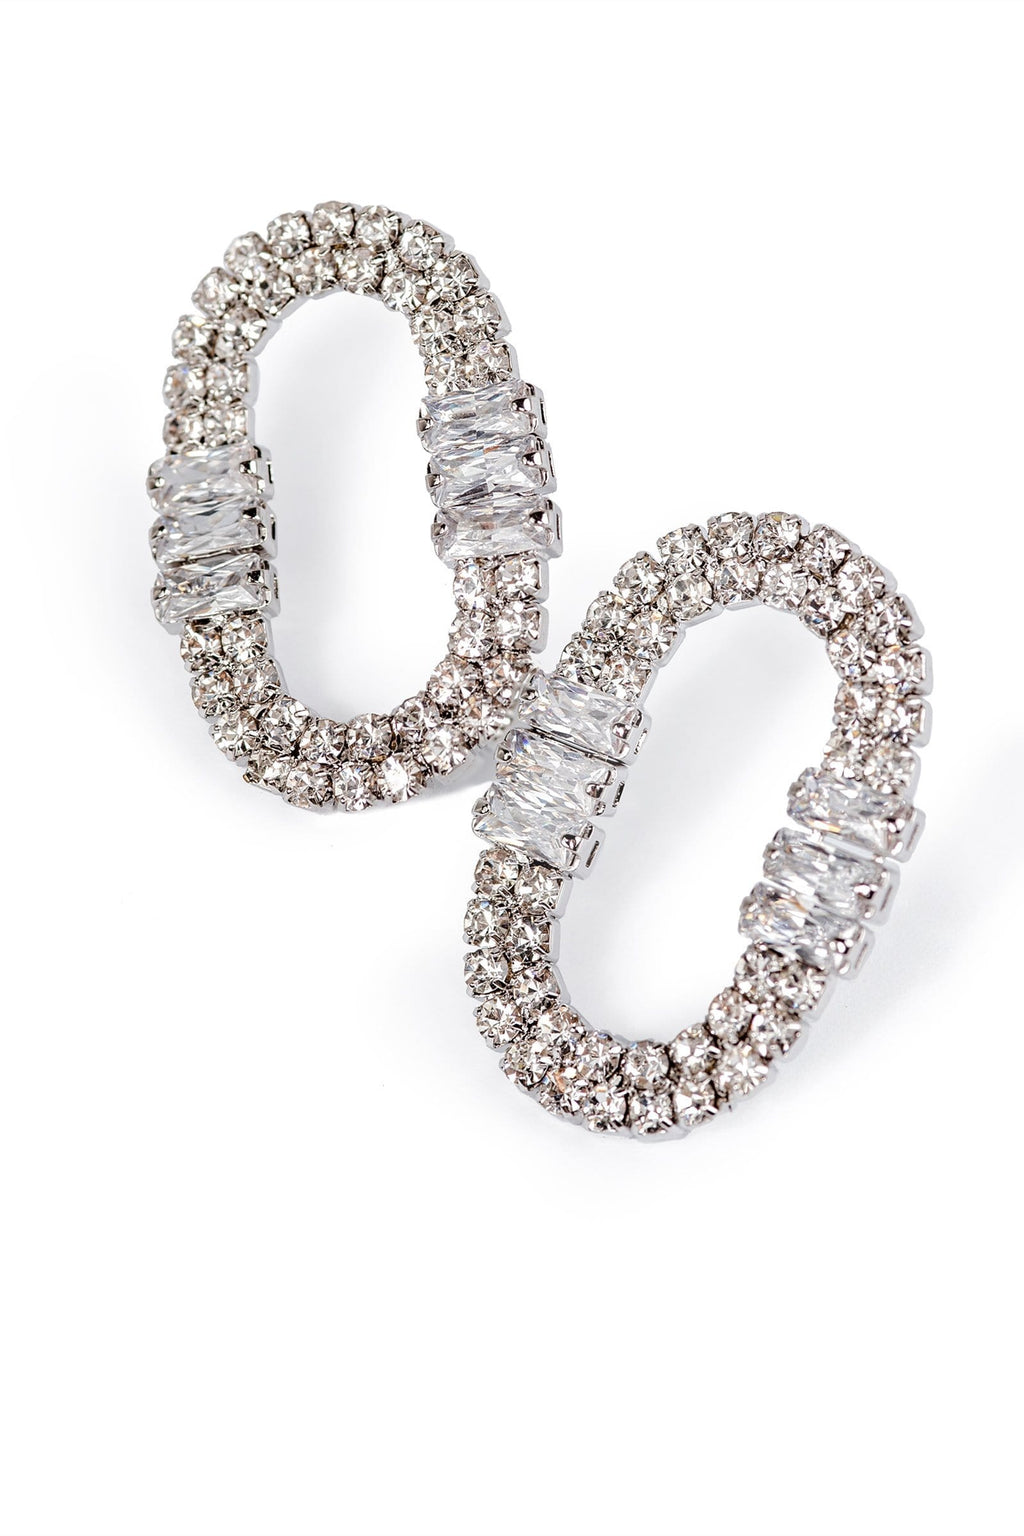 O-vation Earrings by J.ING women's clothing and accessories